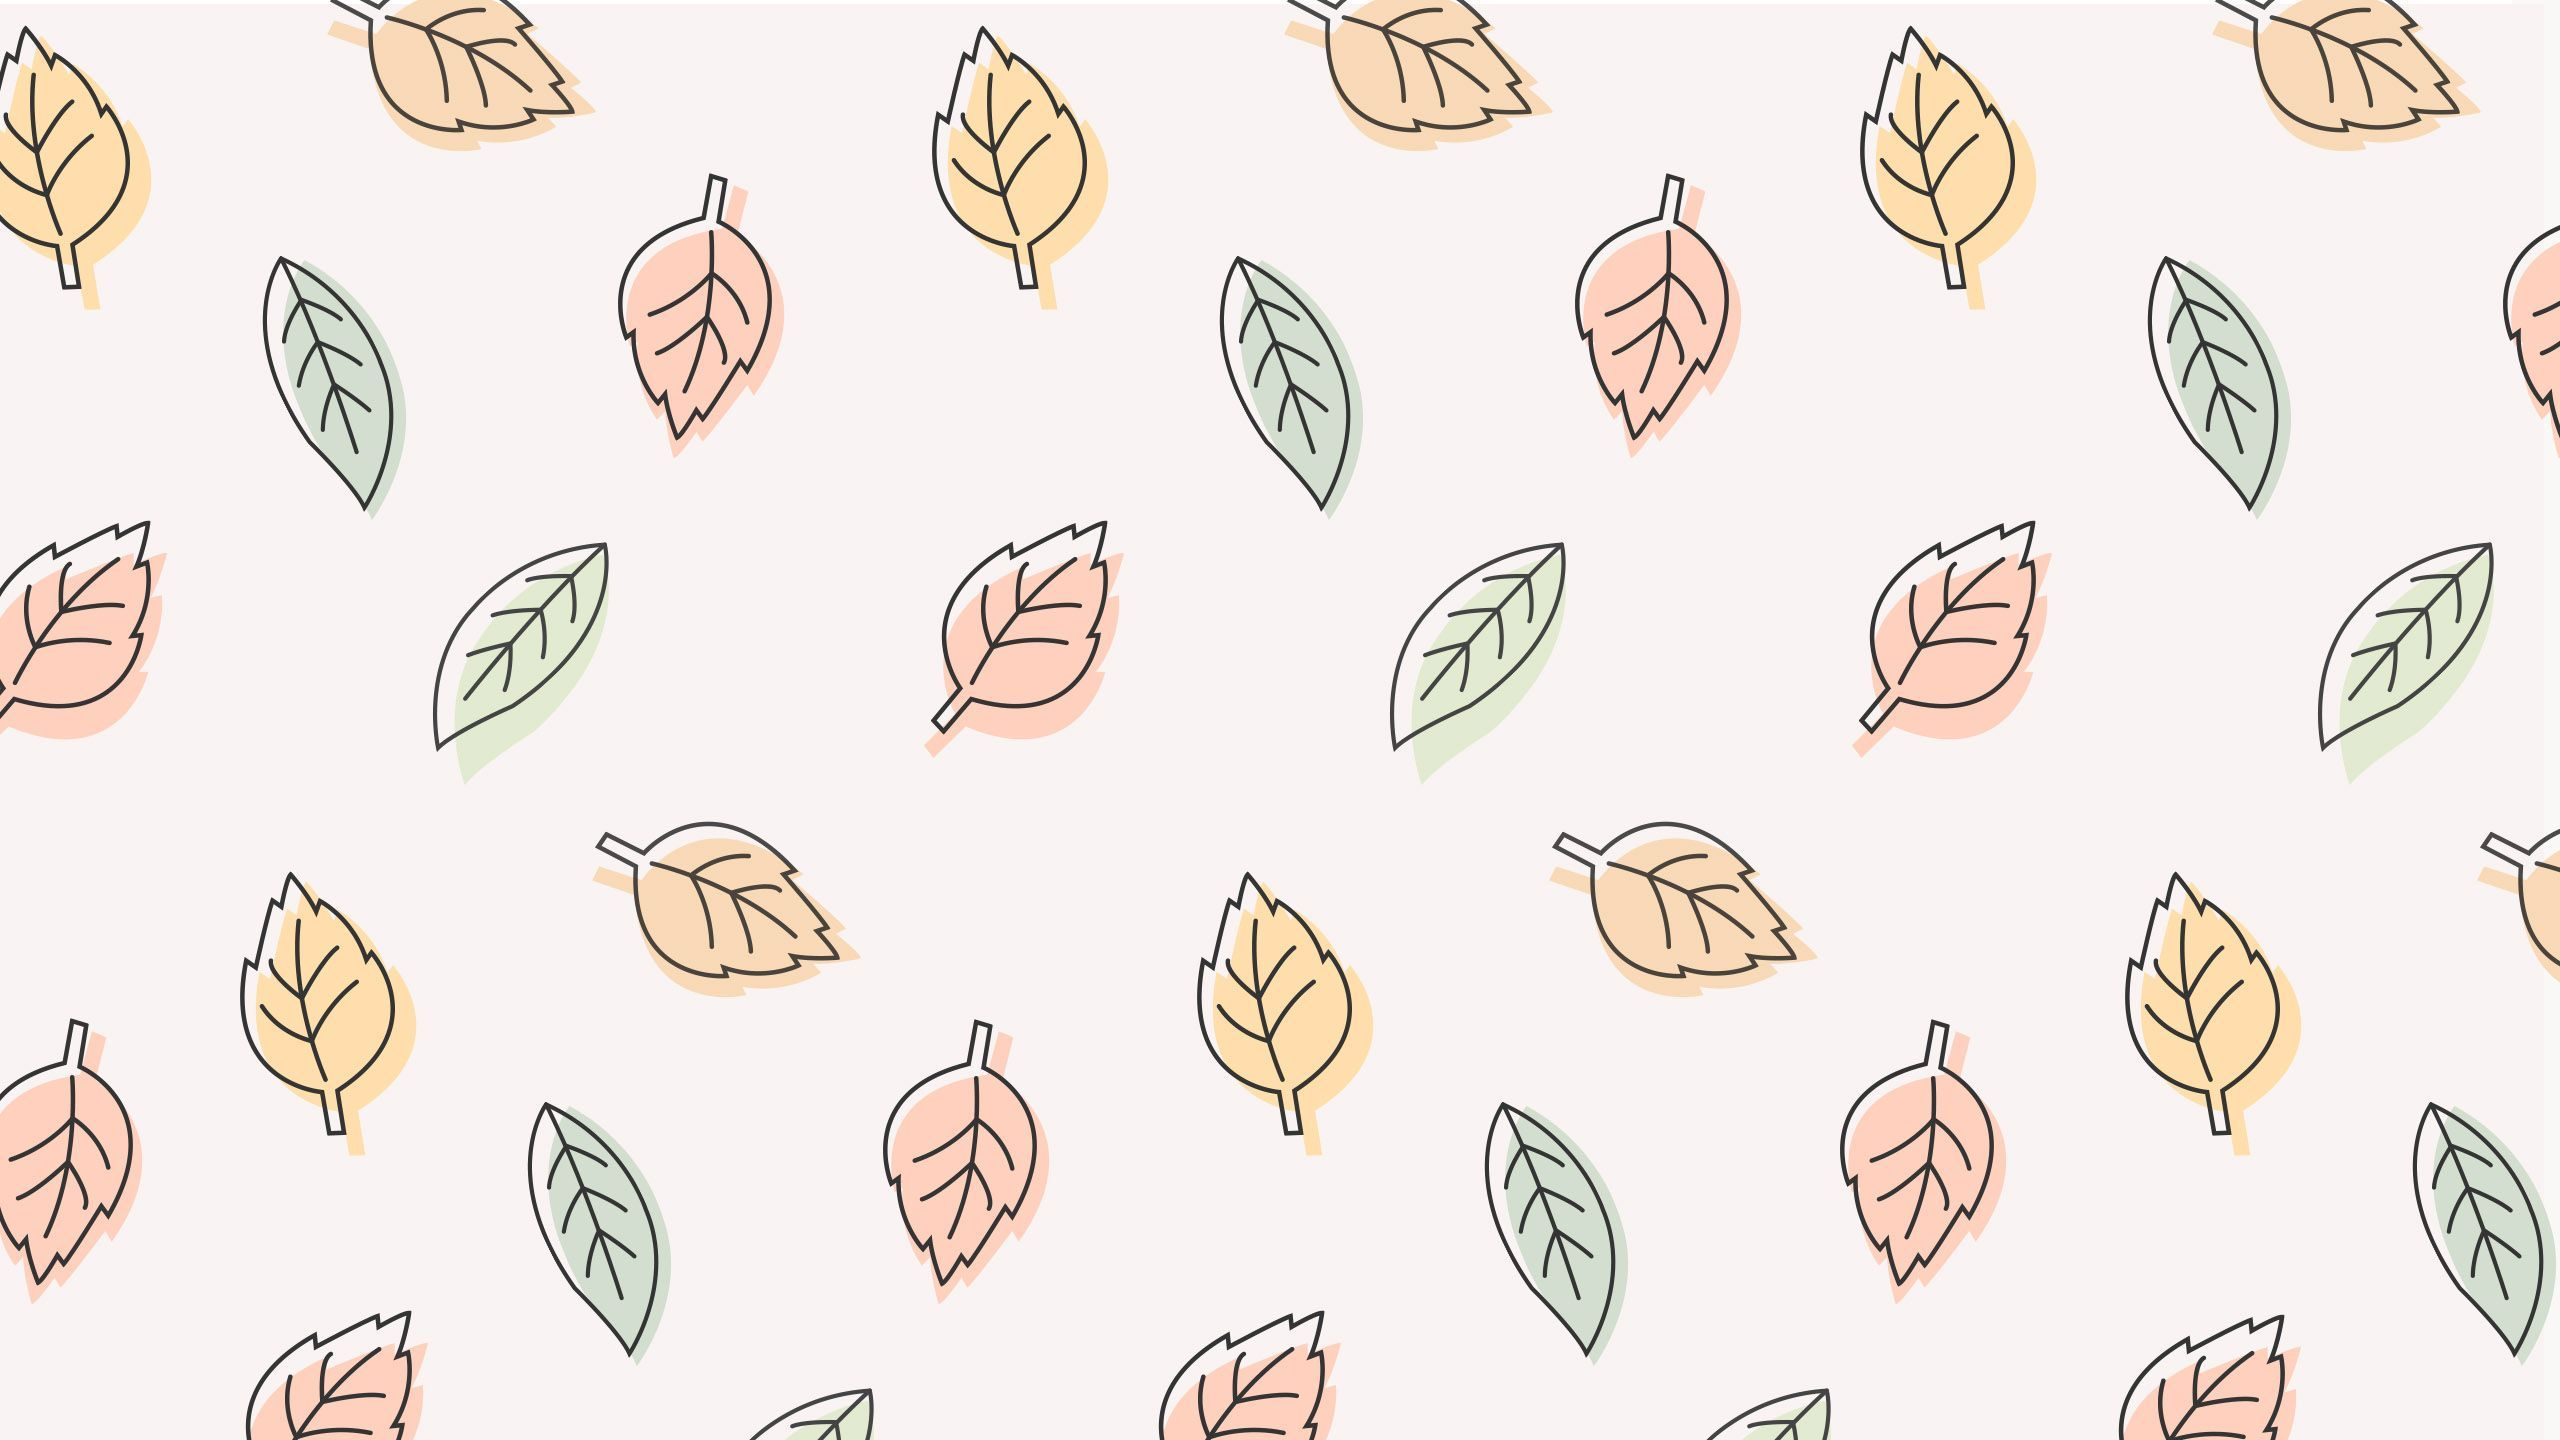 Fall Wallpaper Aesthetic Computer Mywallpapers Site Computer Wallpaper Desktop Wallpapers Cute Desktop Wallpaper Cute Laptop Wallpaper